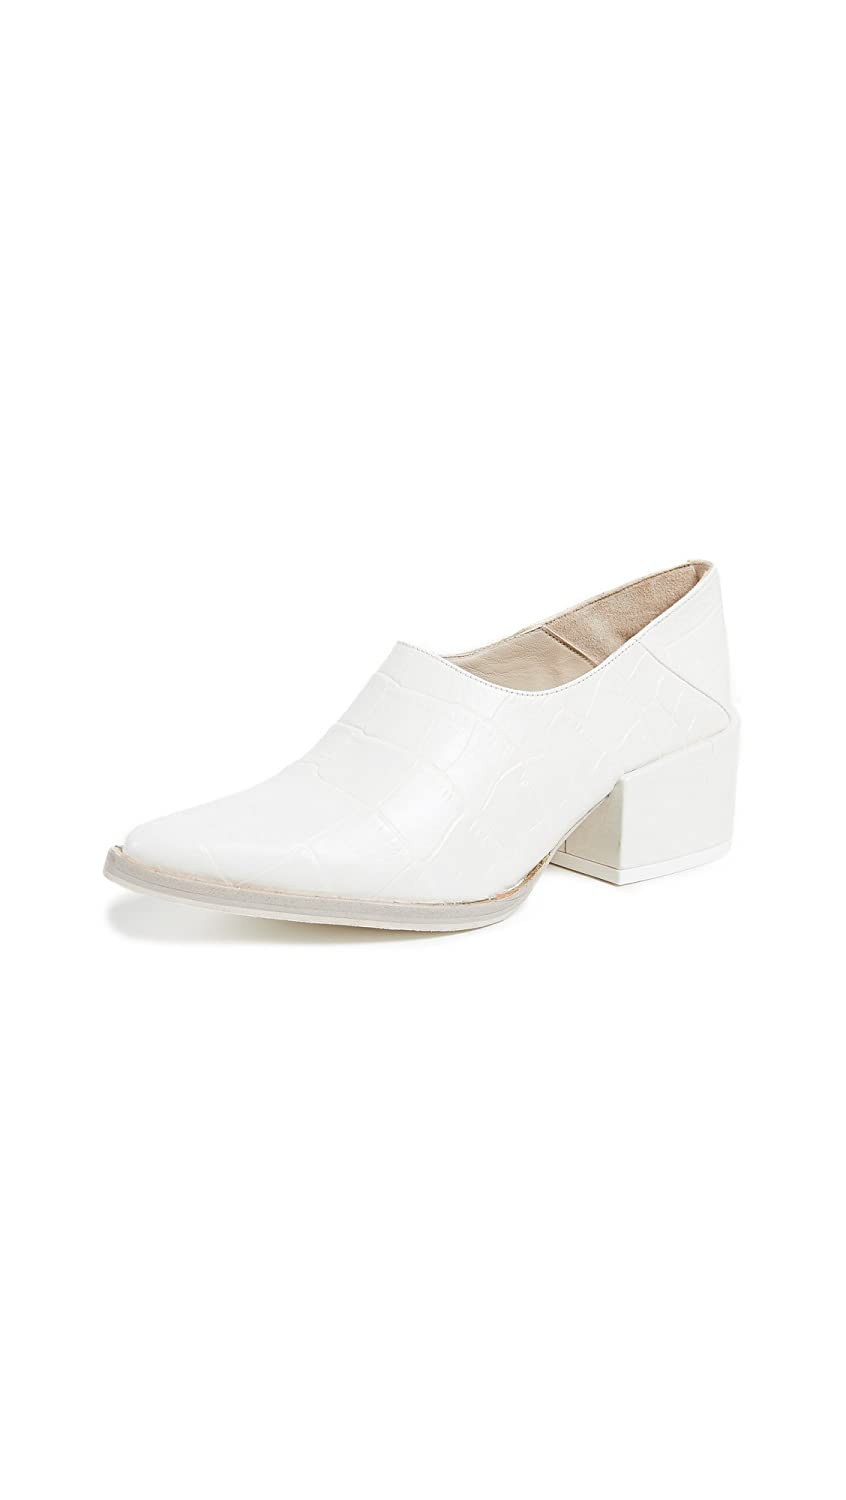 Freda Salvador Women's Crescent Block Heel Booties B07D4L7QGN 8.5 B(M) US|White